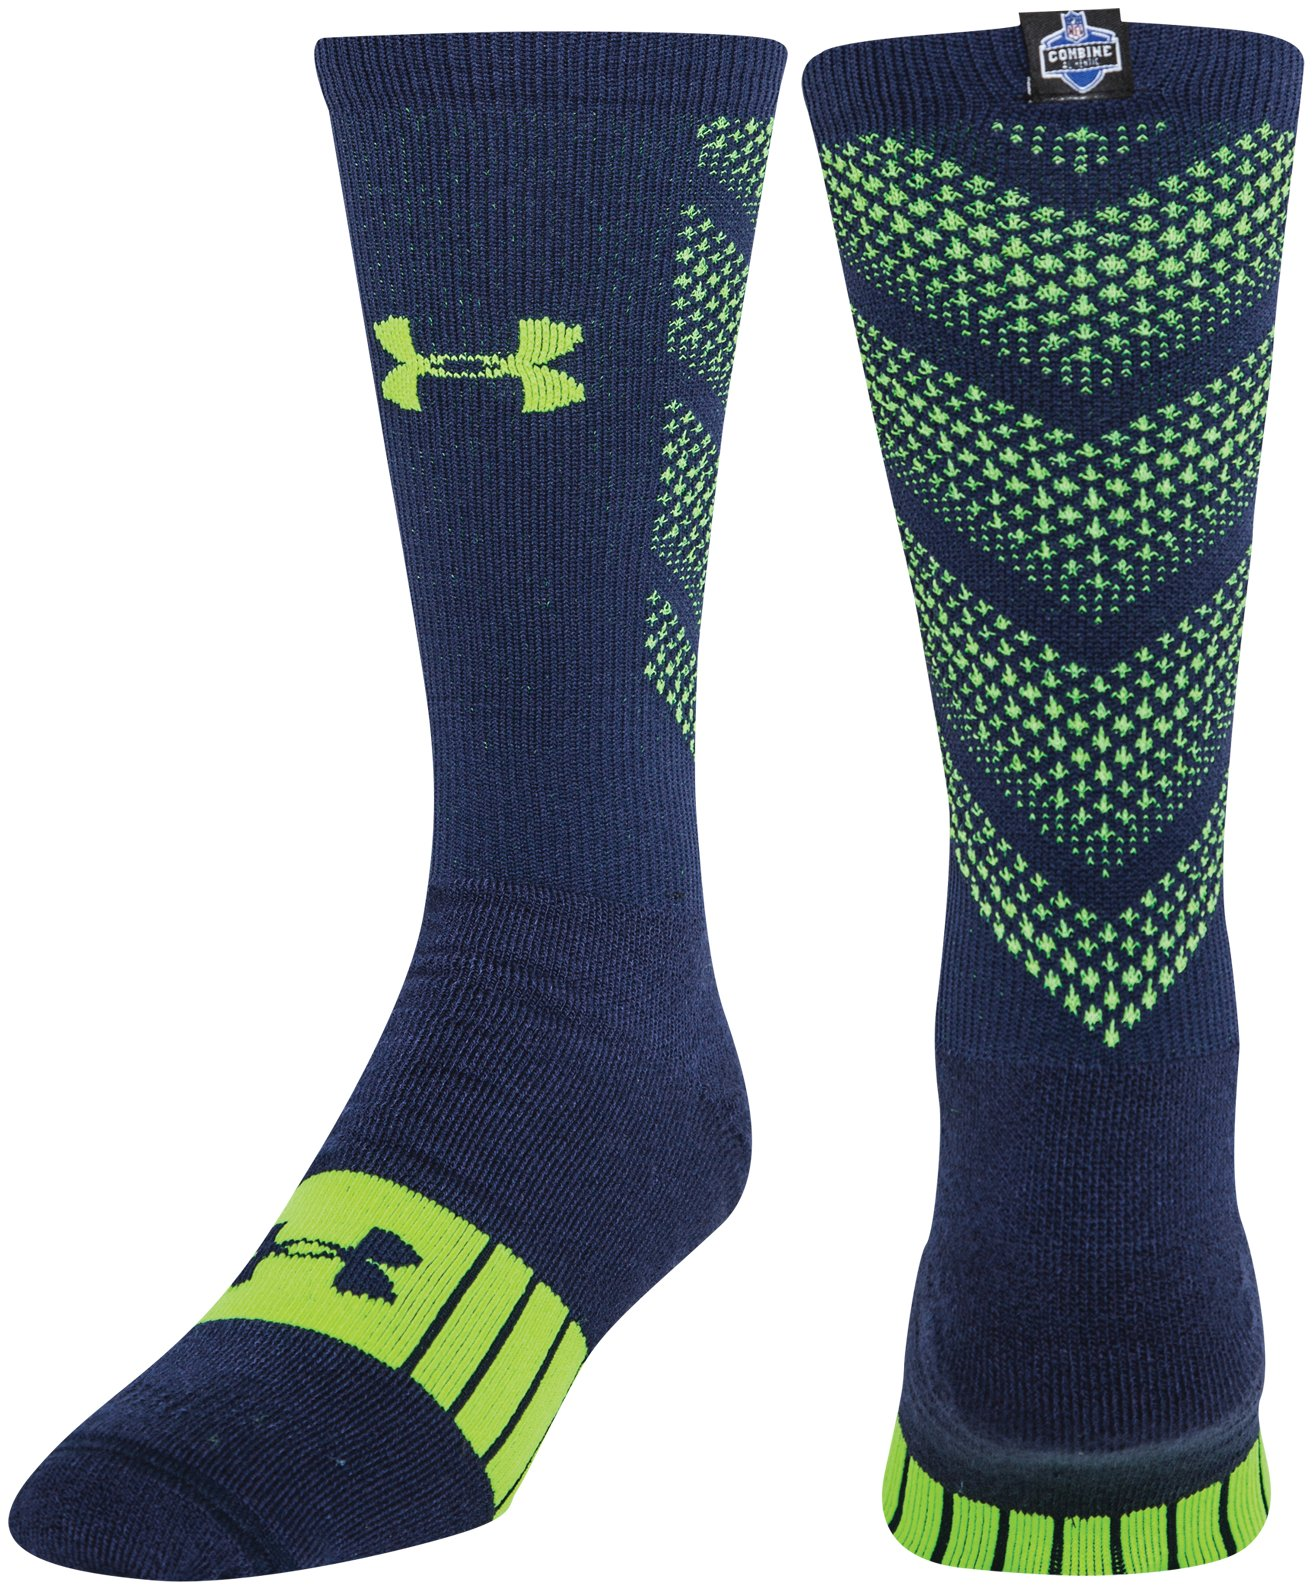 Men's NFL Combine Authentic Socks, Midnight Navy